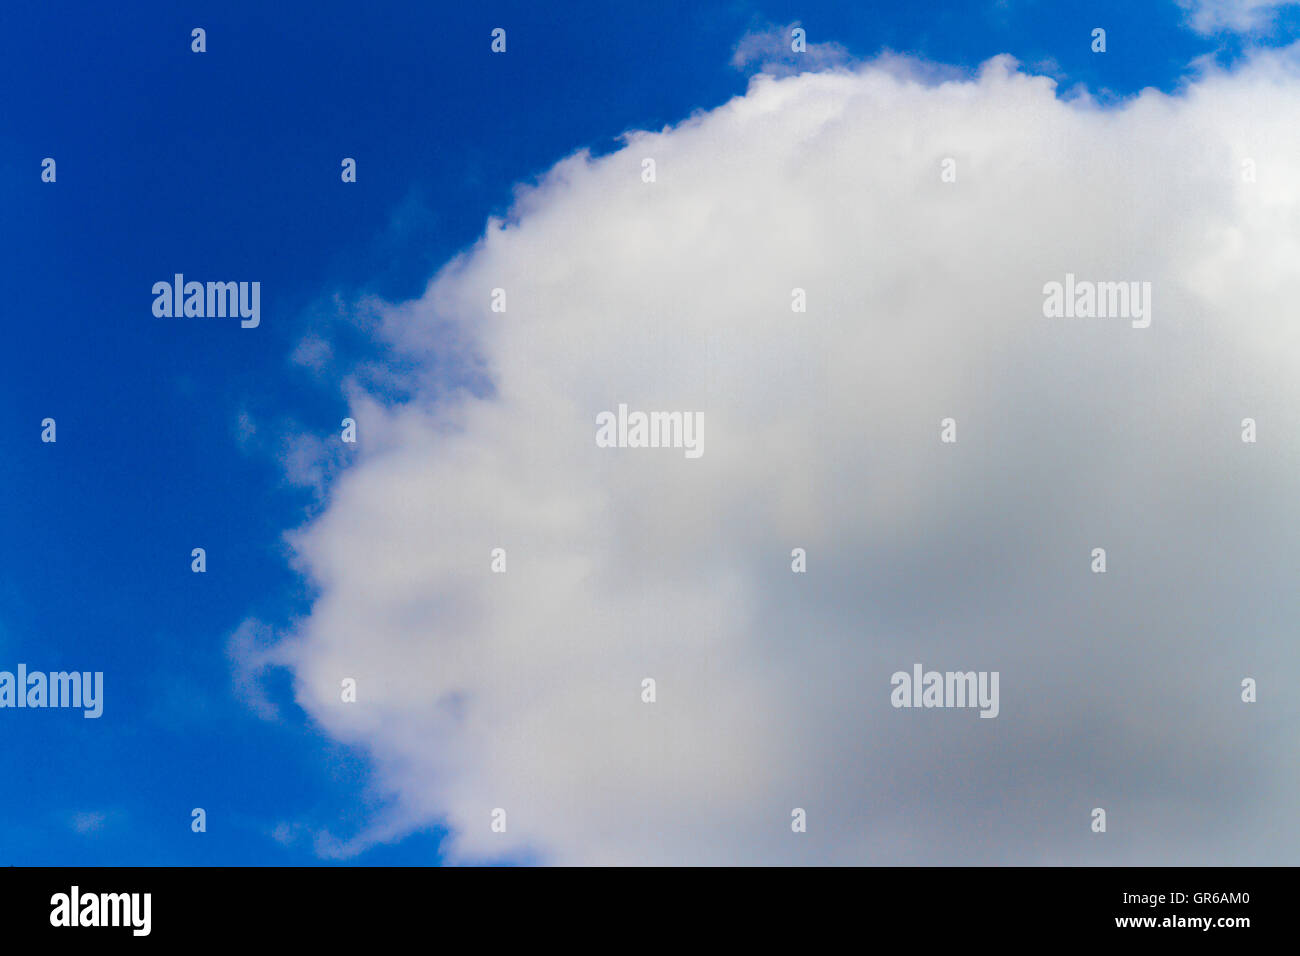 White Cloud Infront Of Blue Sky In Summer - Stock Image